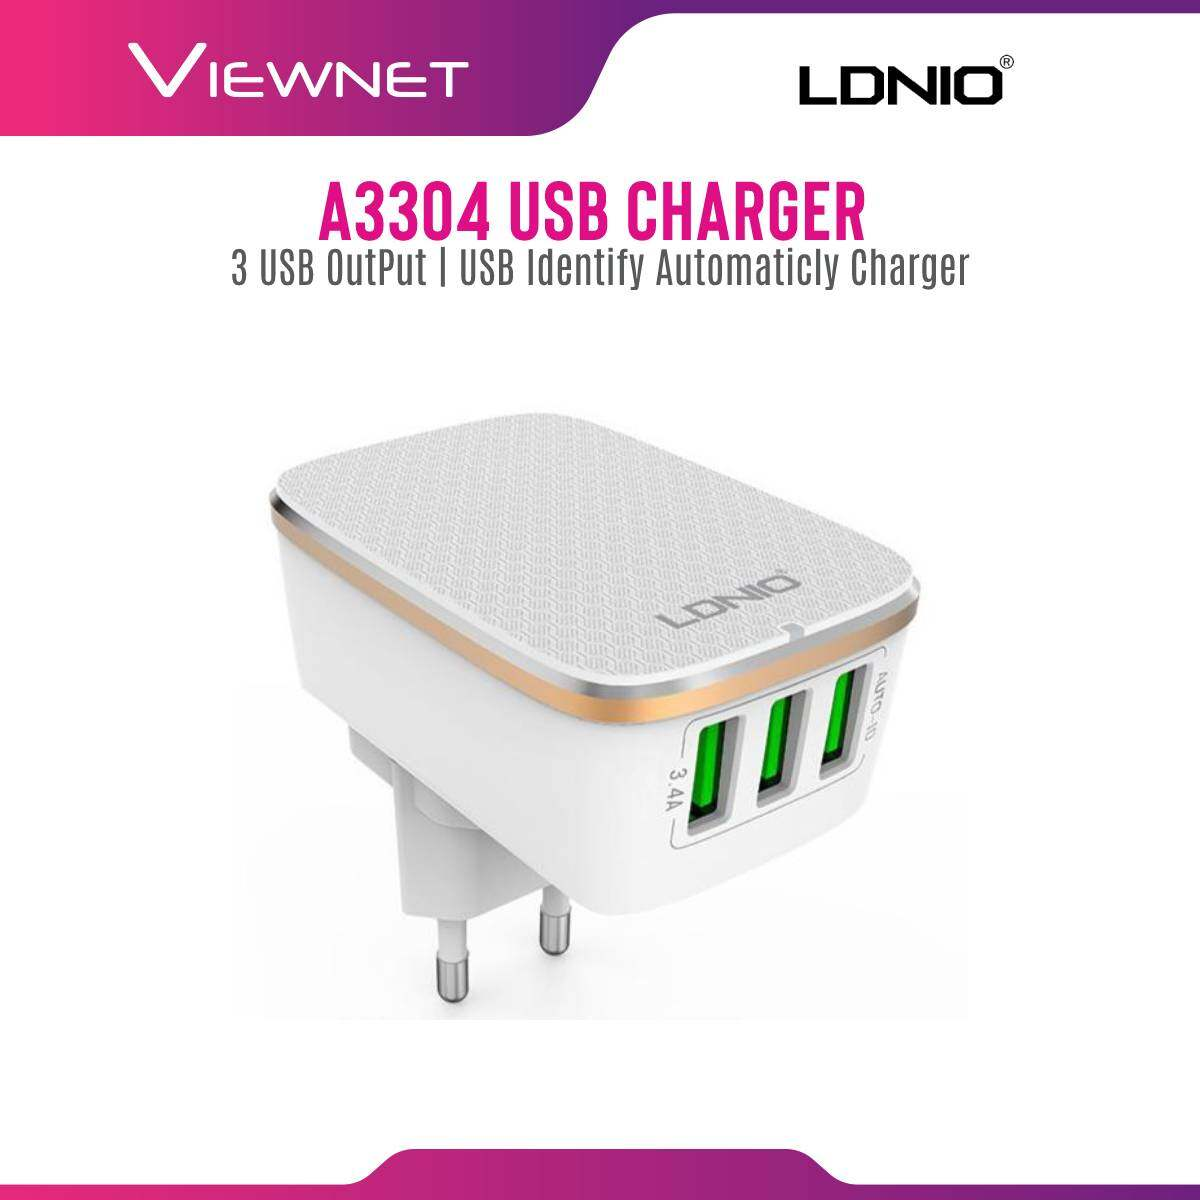 Ldnio Rapid Charge 3 USB Port With Micro USB Cable (A3304), Input:100-240V, 50-60Hz, Output: 5V/3.4